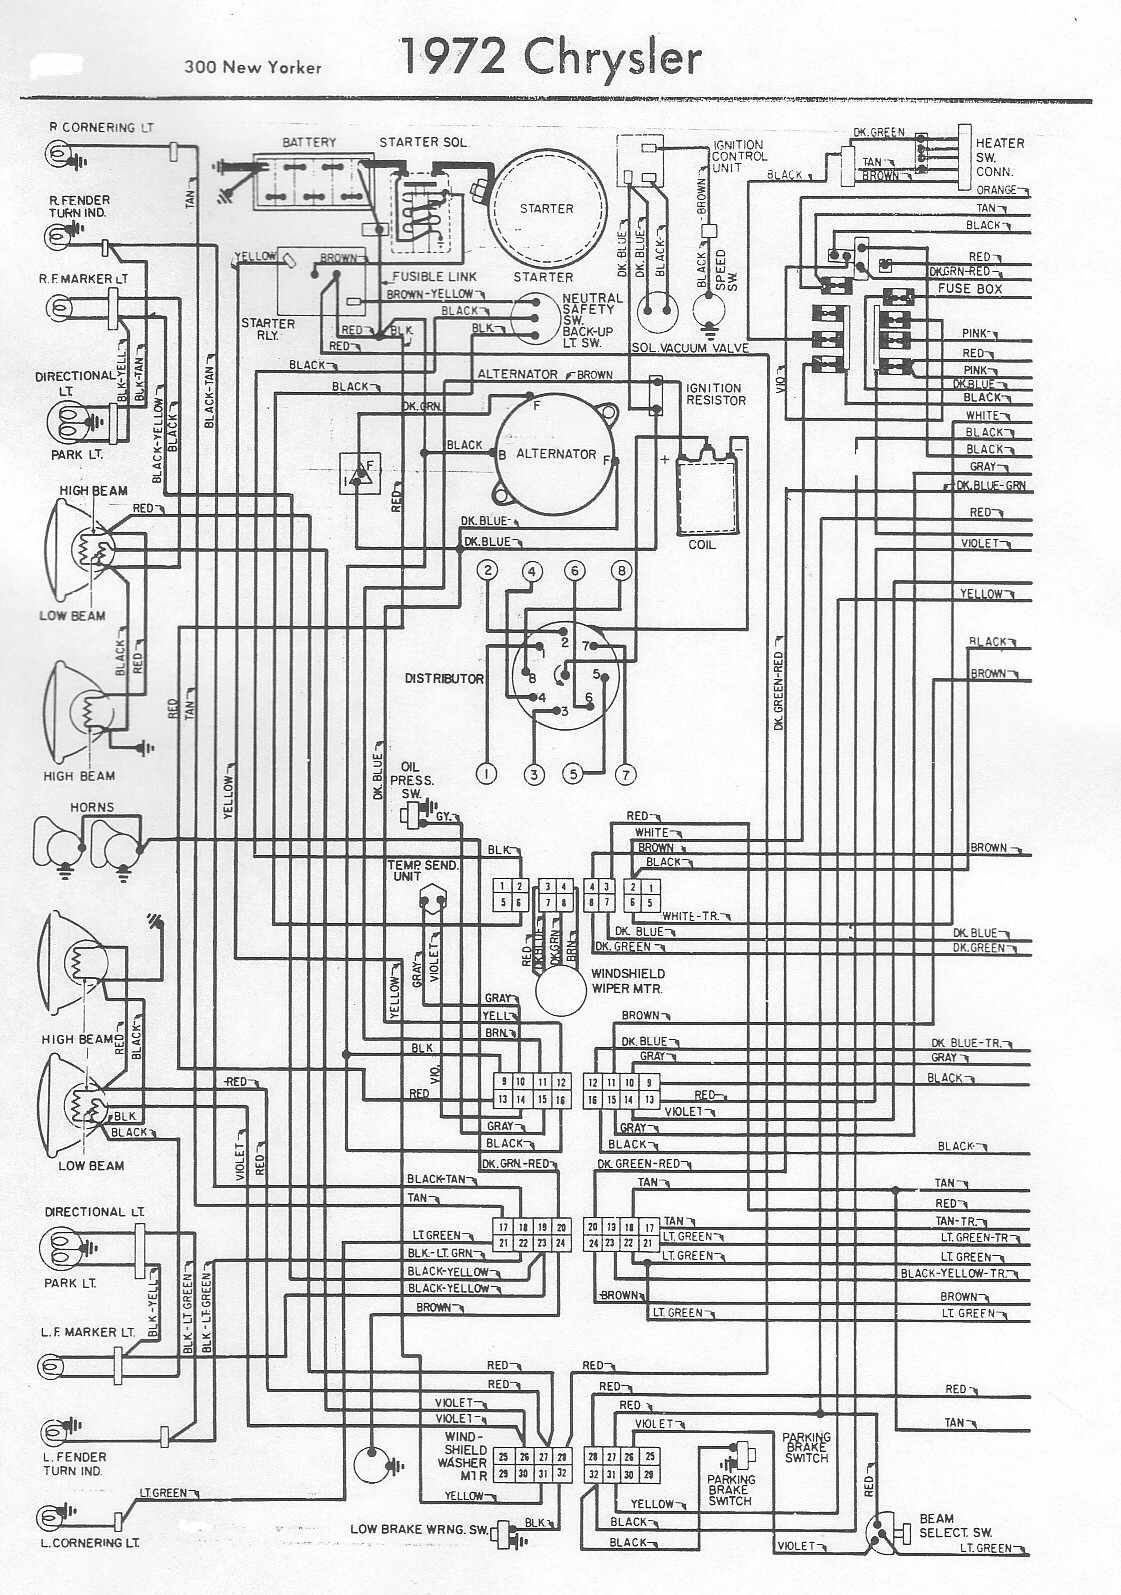 plymouth voyager wiring diagram automotive [ 1121 x 1595 Pixel ]